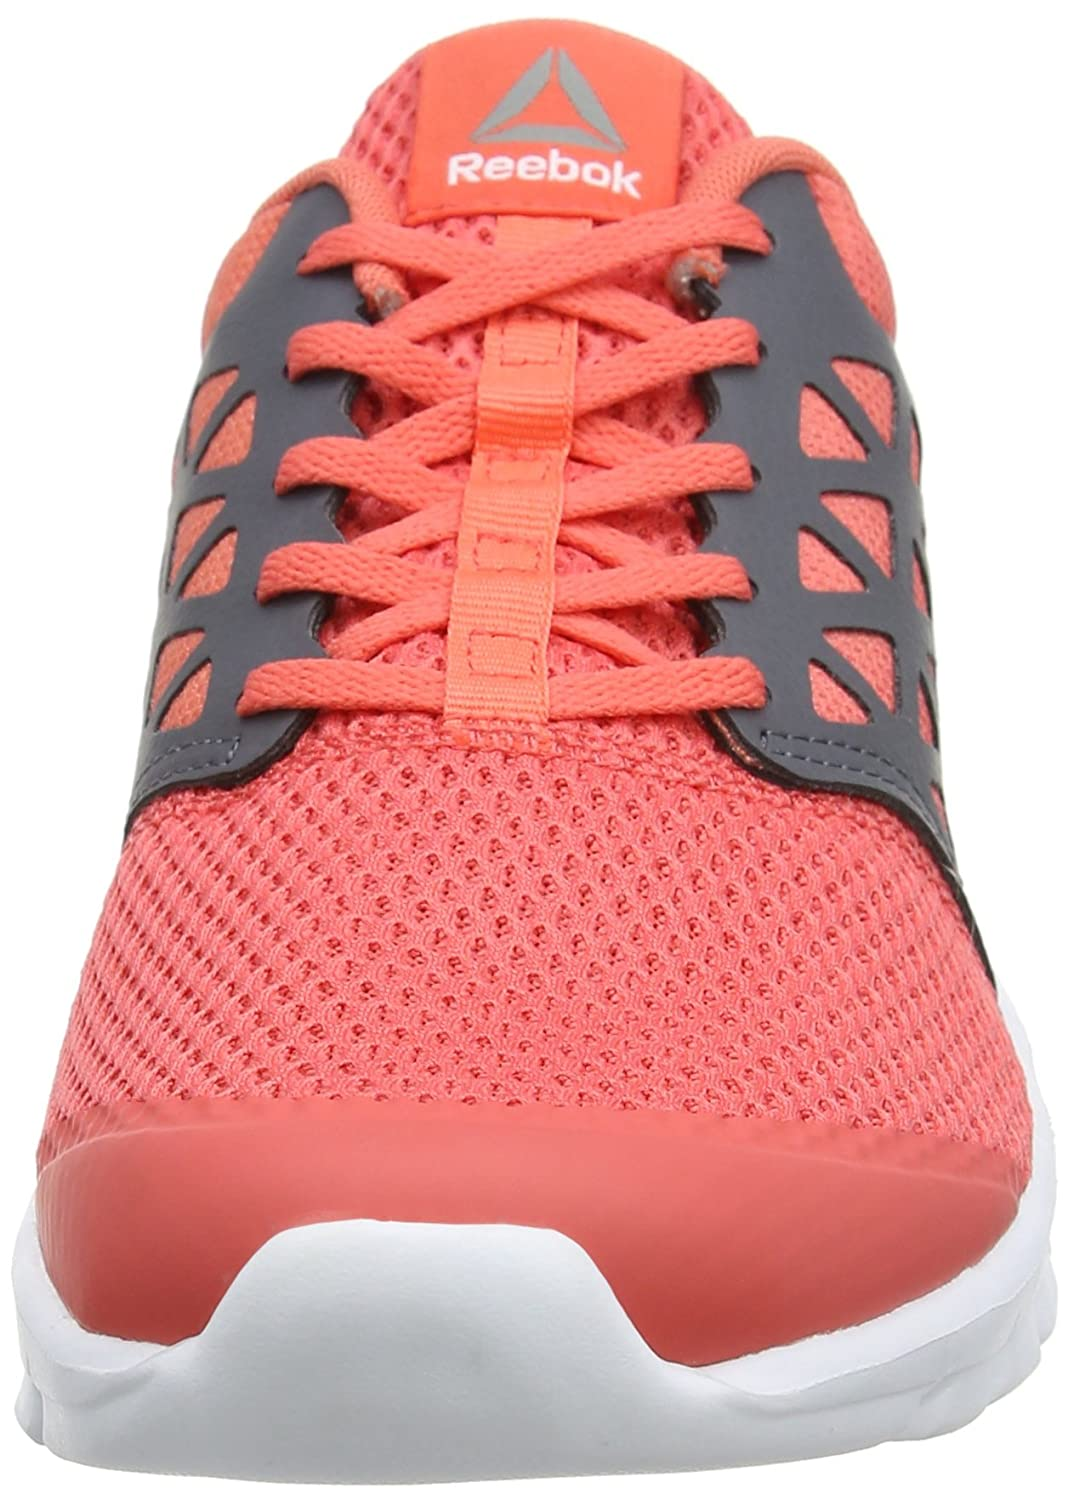 5fe1aff71c7d Reebok Women s Bd5540 Trail Running Shoes Red (Fire Coral Ash Grey White  Pewter) 6.5 UK  Amazon.in  Shoes   Handbags